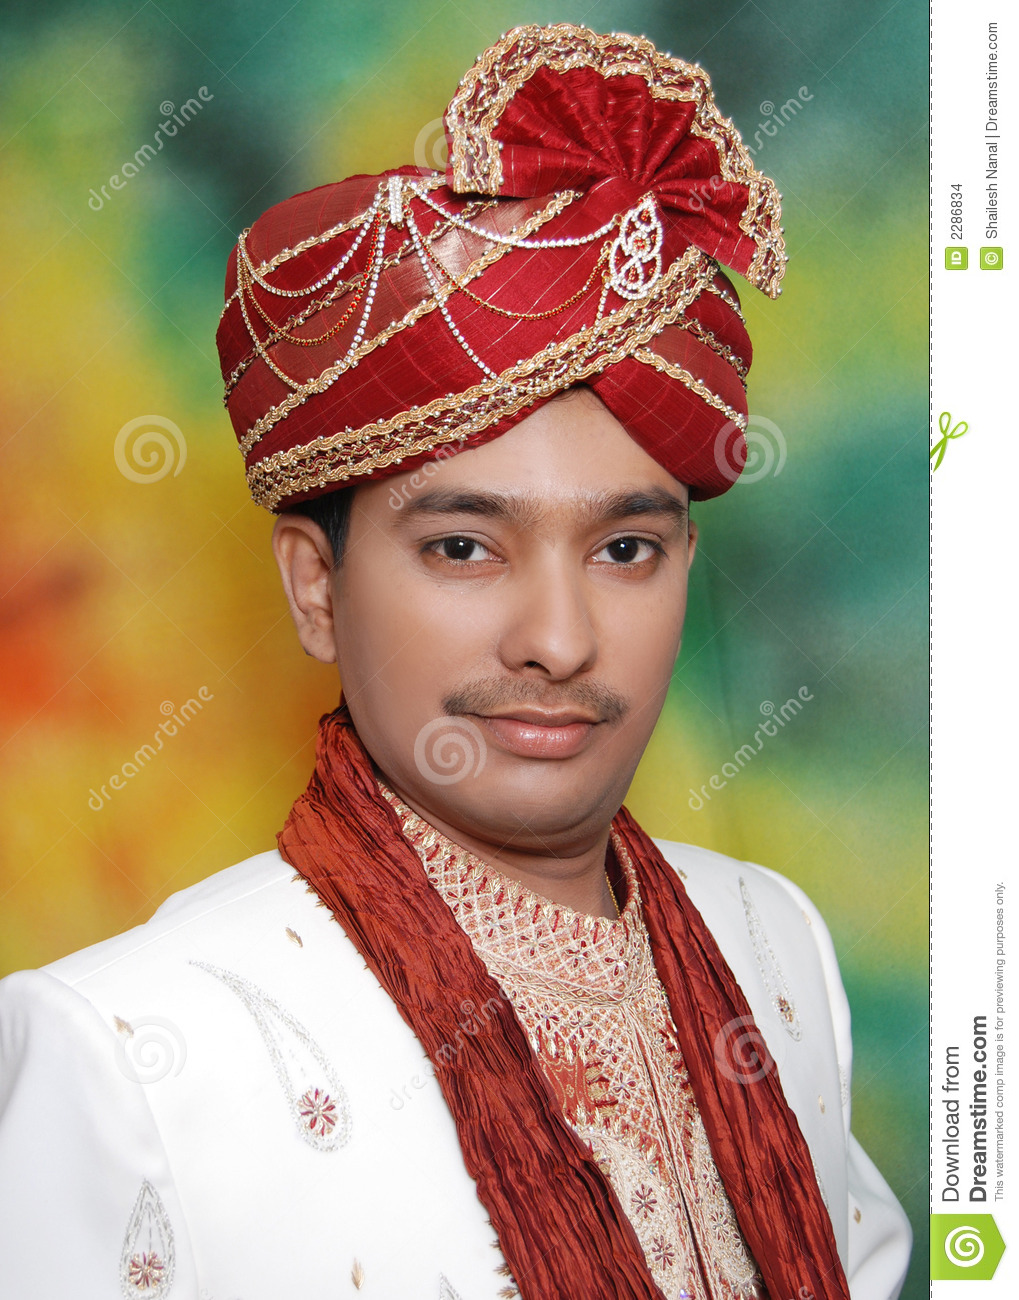 dell hindu single men It's free to register, view photos, and send messages to single muslim men and women in your area  hindu singles jewish singles.